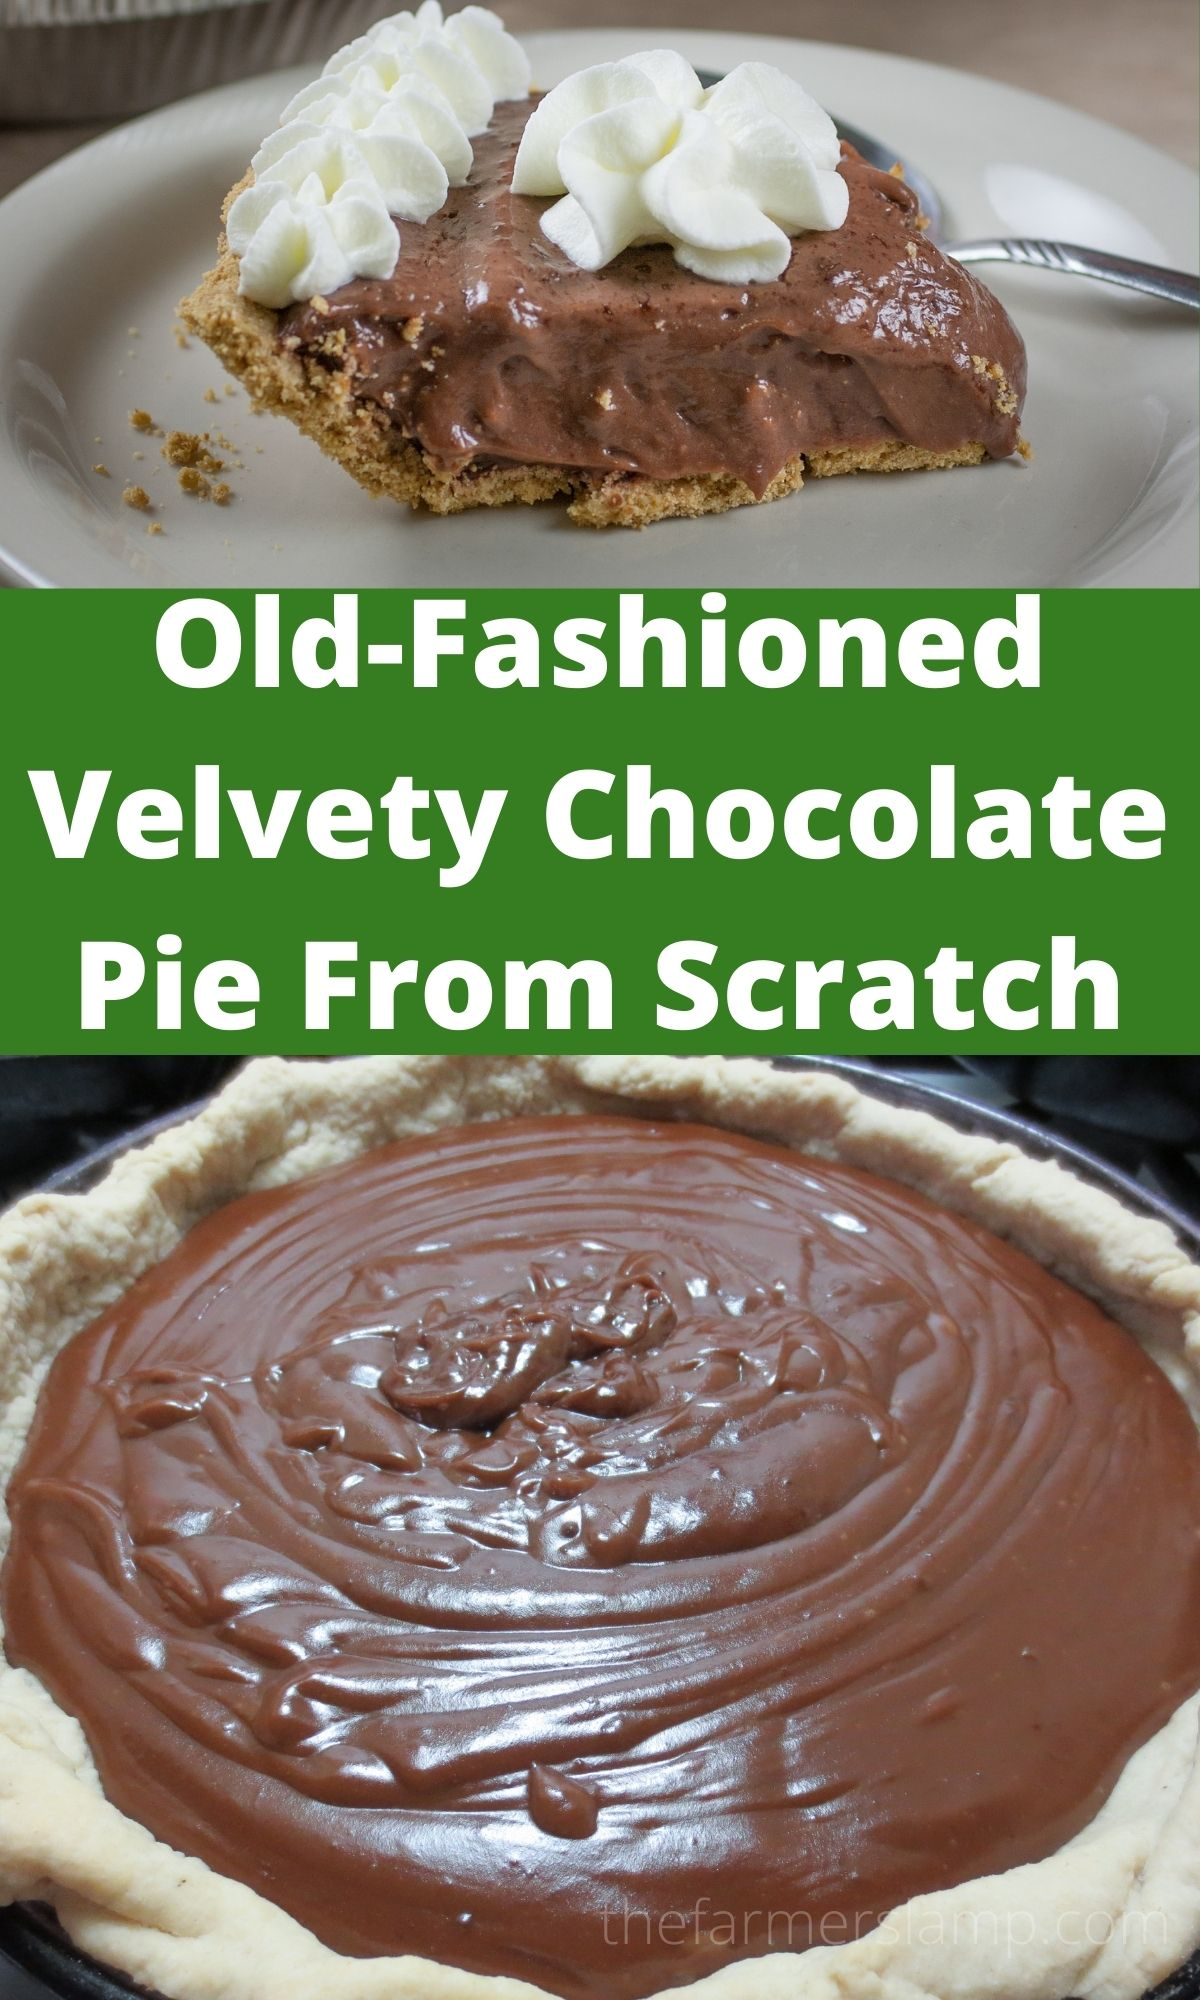 Homemade Old-fashioned Chocolate Pie Recipe from Scratch